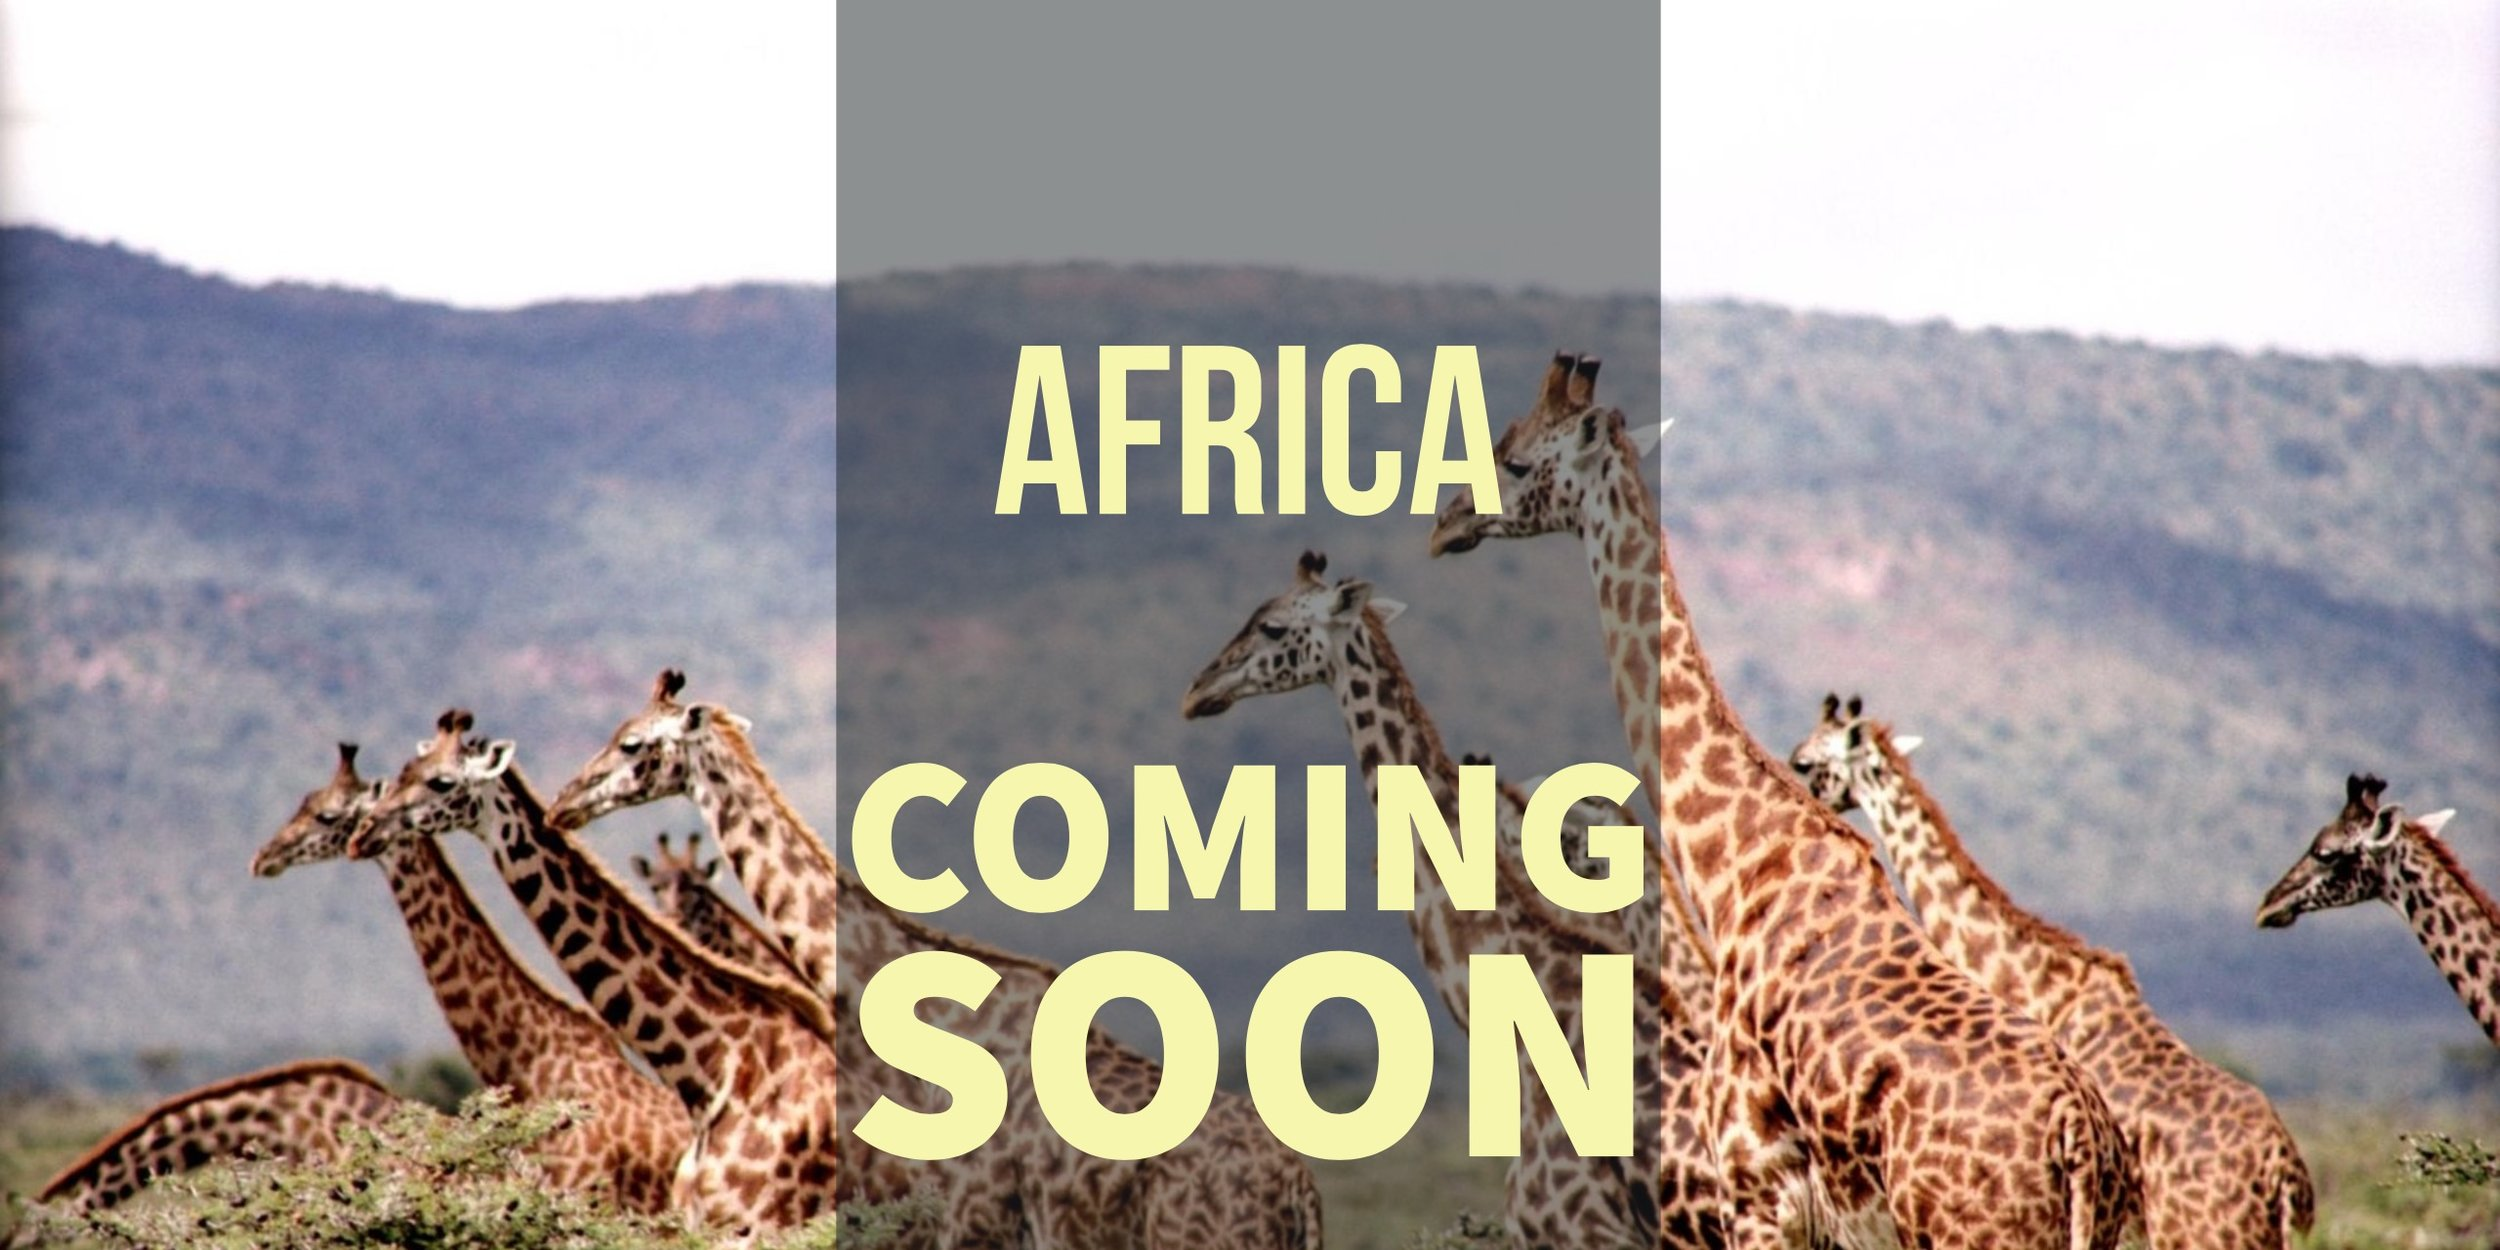 Africa Coming Soon